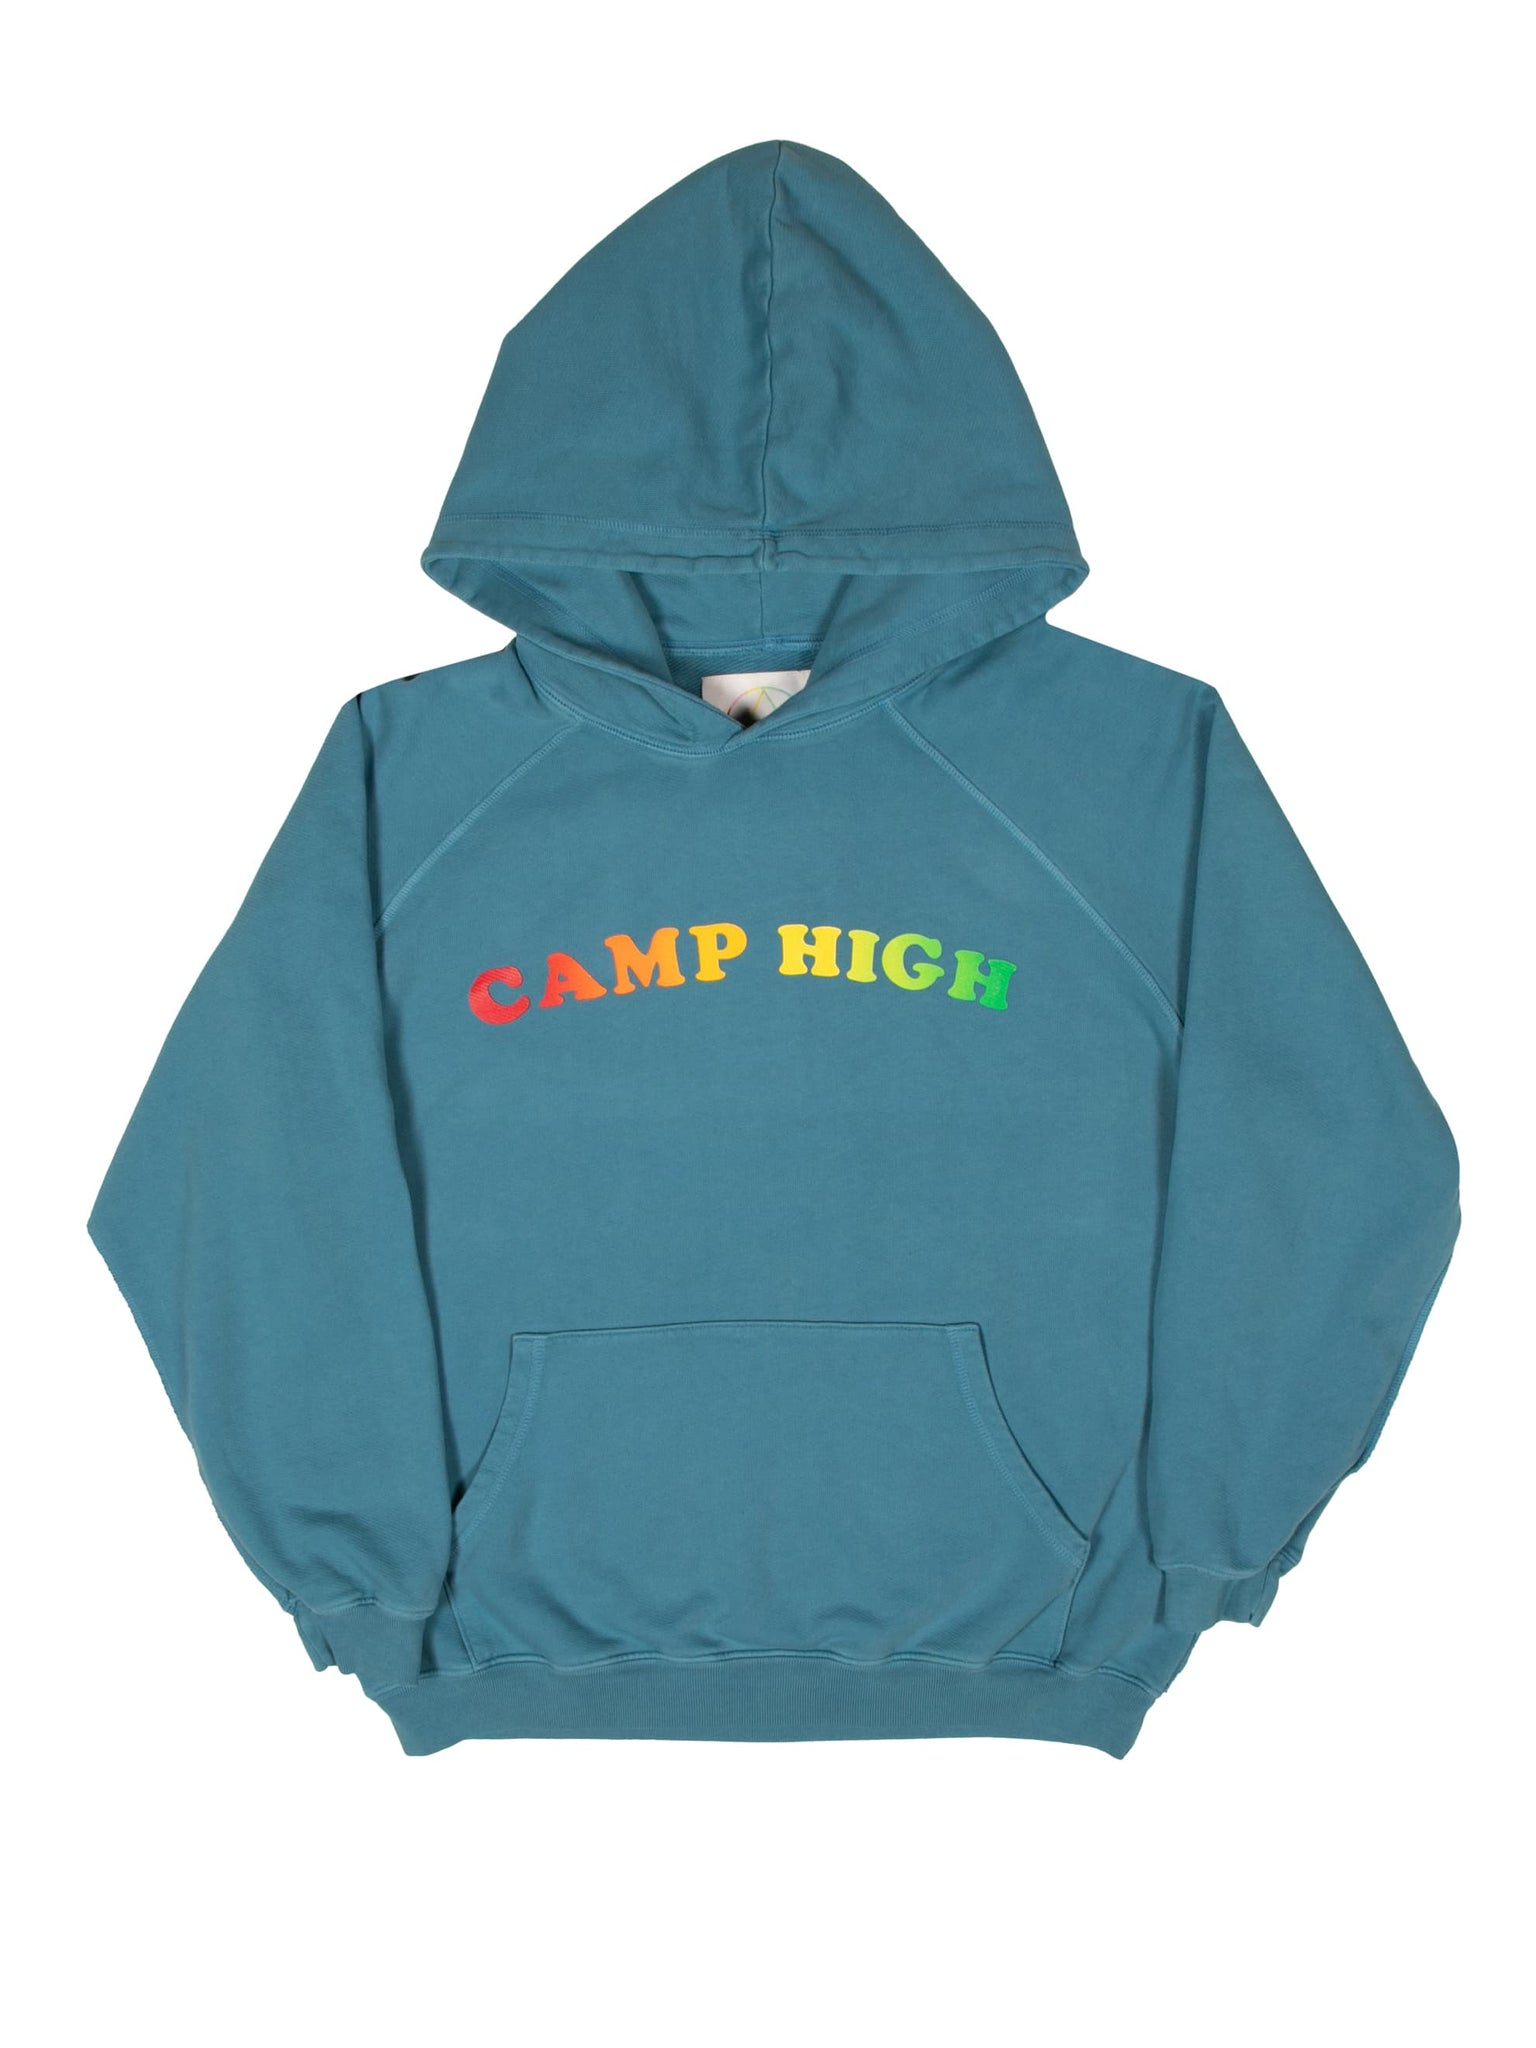 Camp High Slate Blue / Small Counselor Hoody